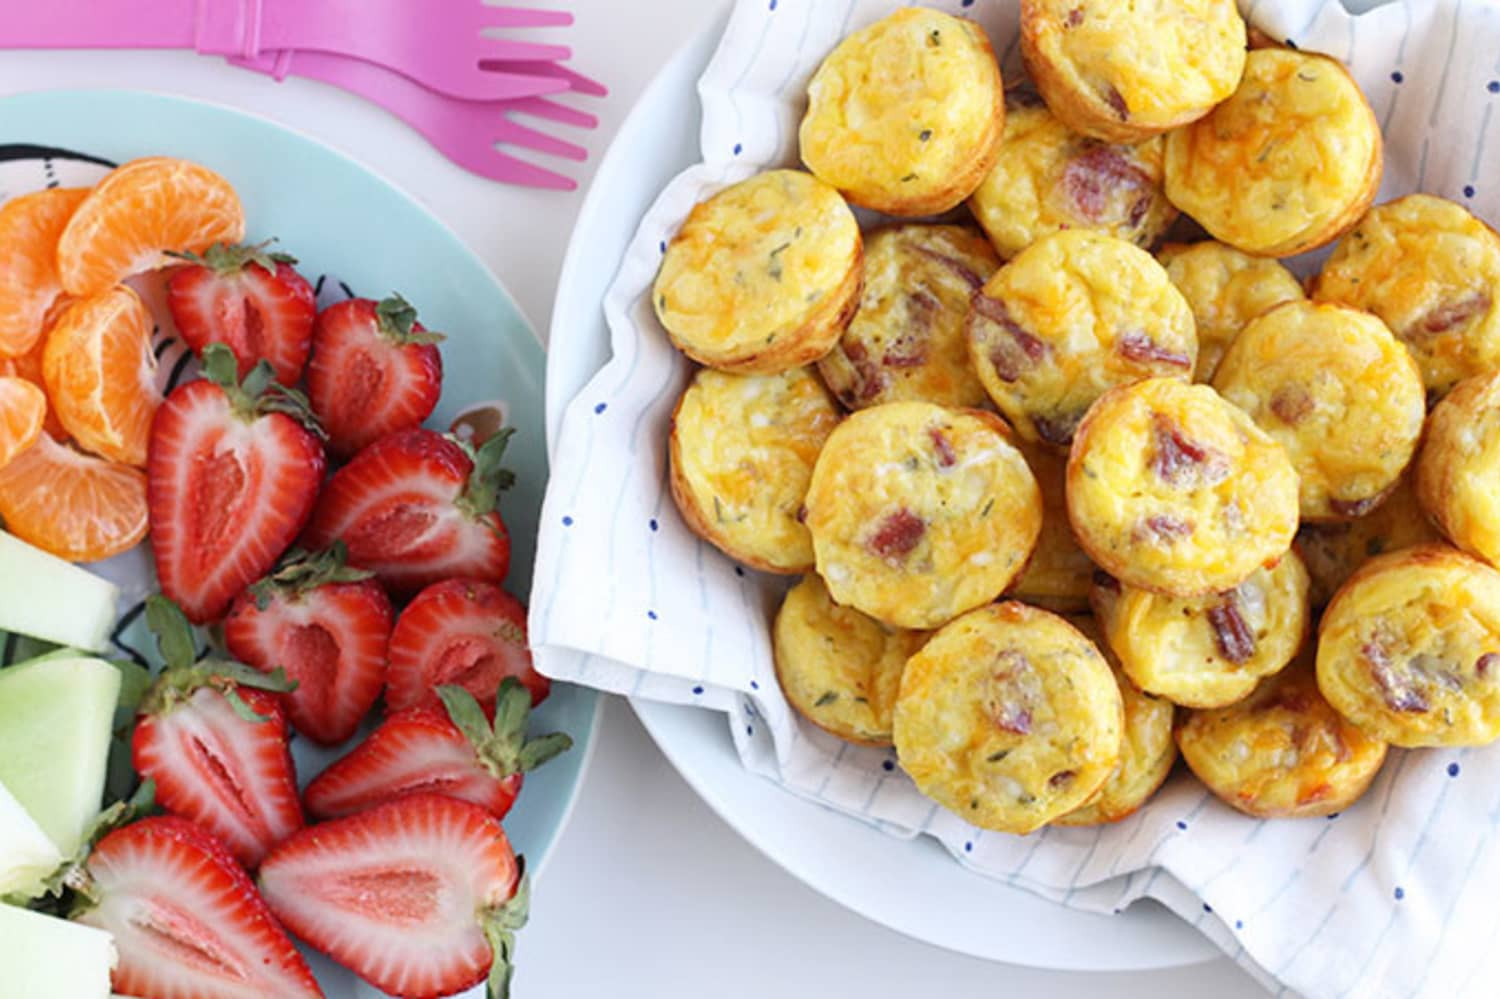 5 Easy Summer Brunch Recipes for the Family